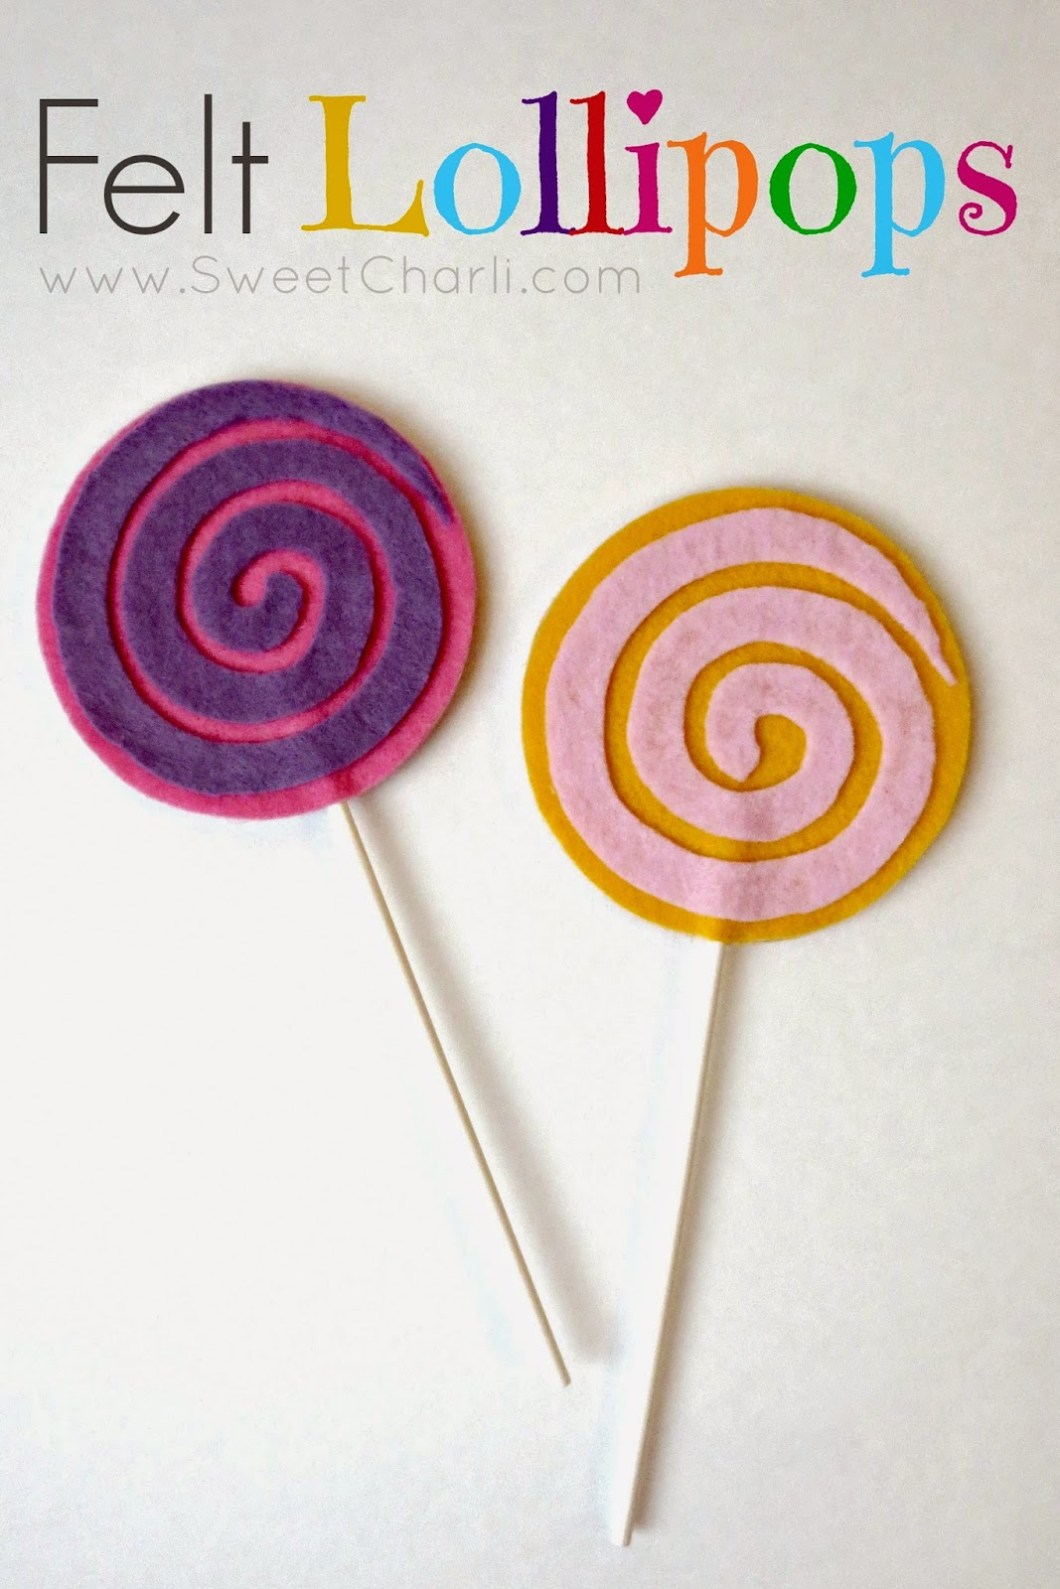 DIY Felt Lollipops